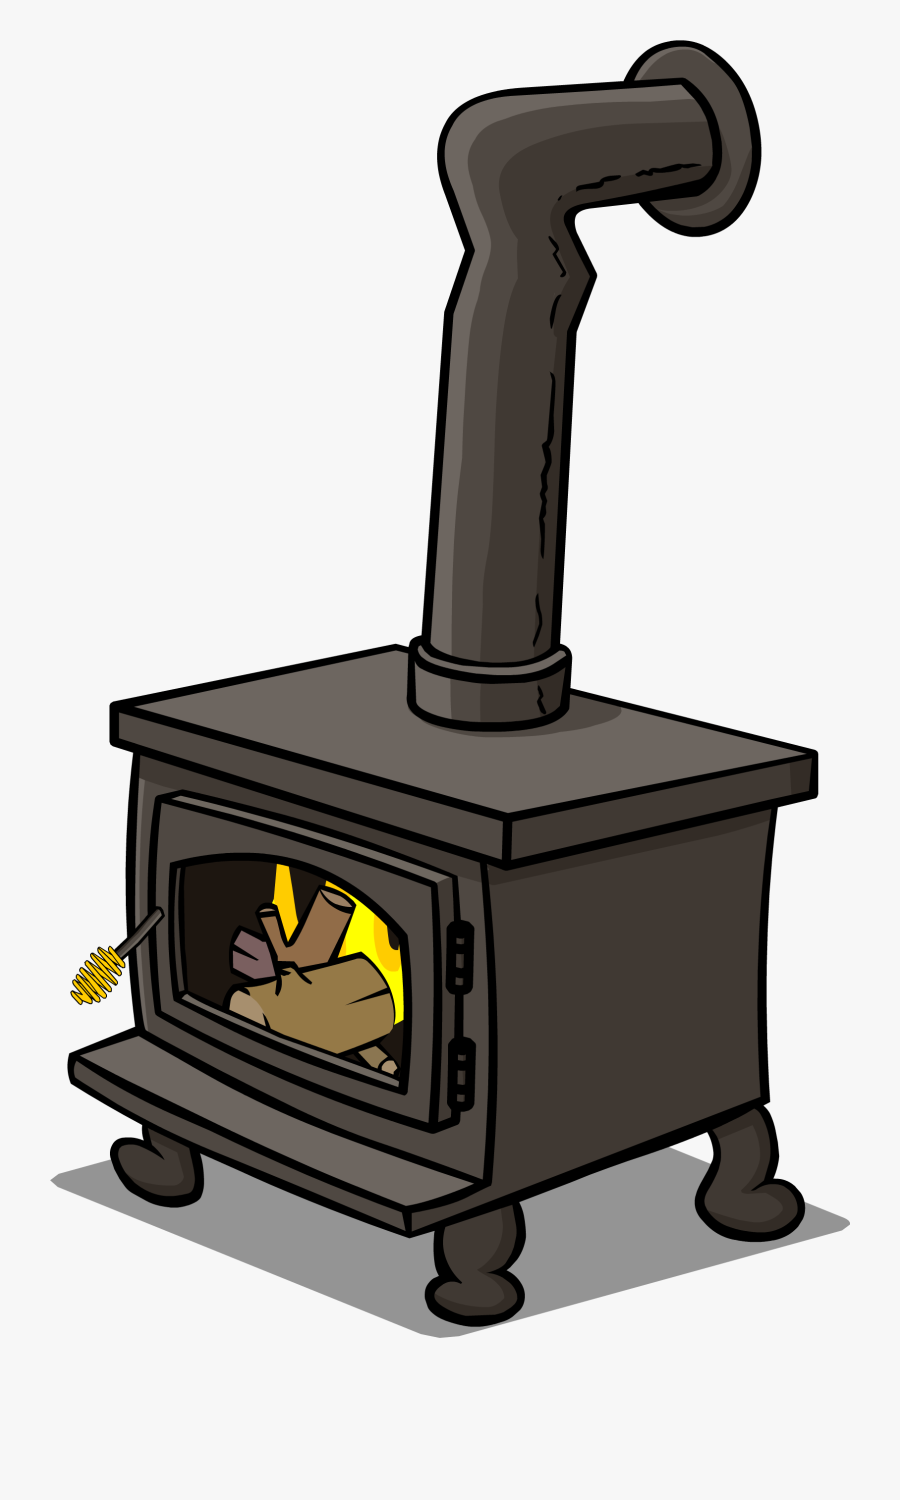 Old Wood Burning Stove Png , Free Transparent Clipart.